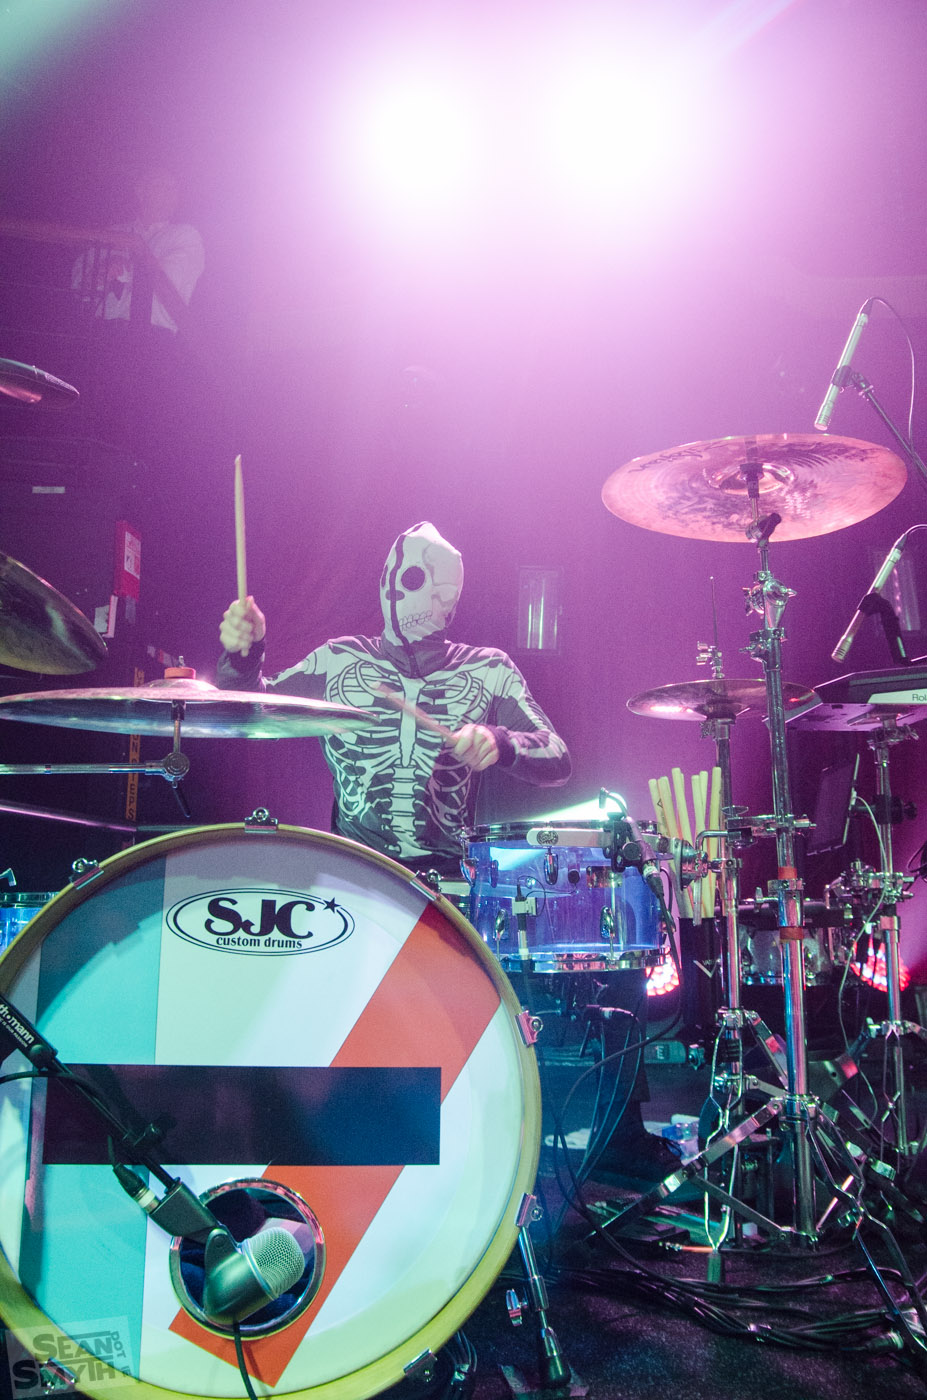 twenty-one-pilots-at-the-academy-by-sean-smyth-16-11-14-40-of-41_15187361343_o